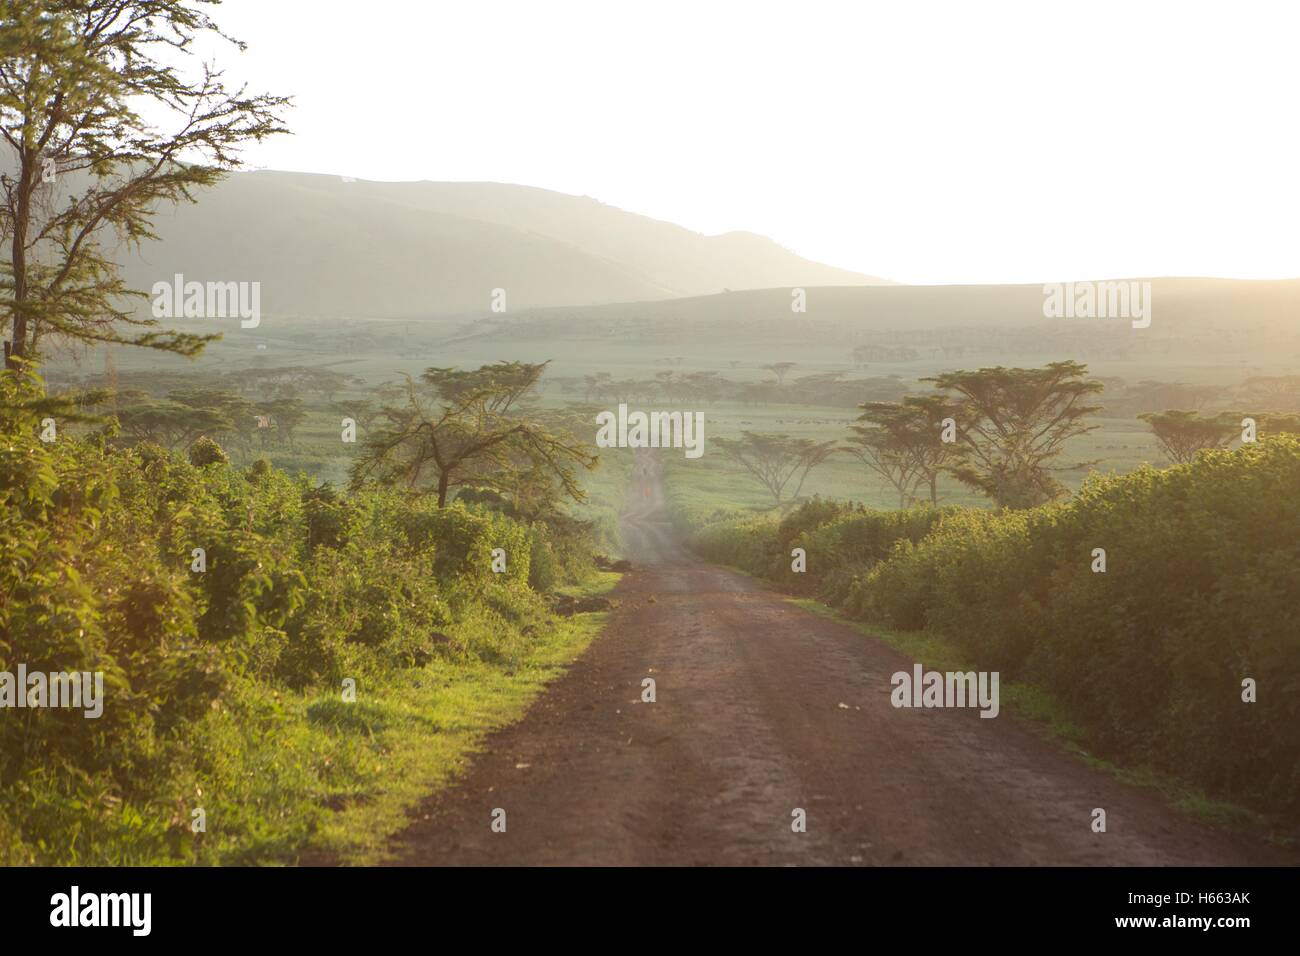 Backroads in the early morning on safari in Serengeti National Park, Tanzania. - Stock Image